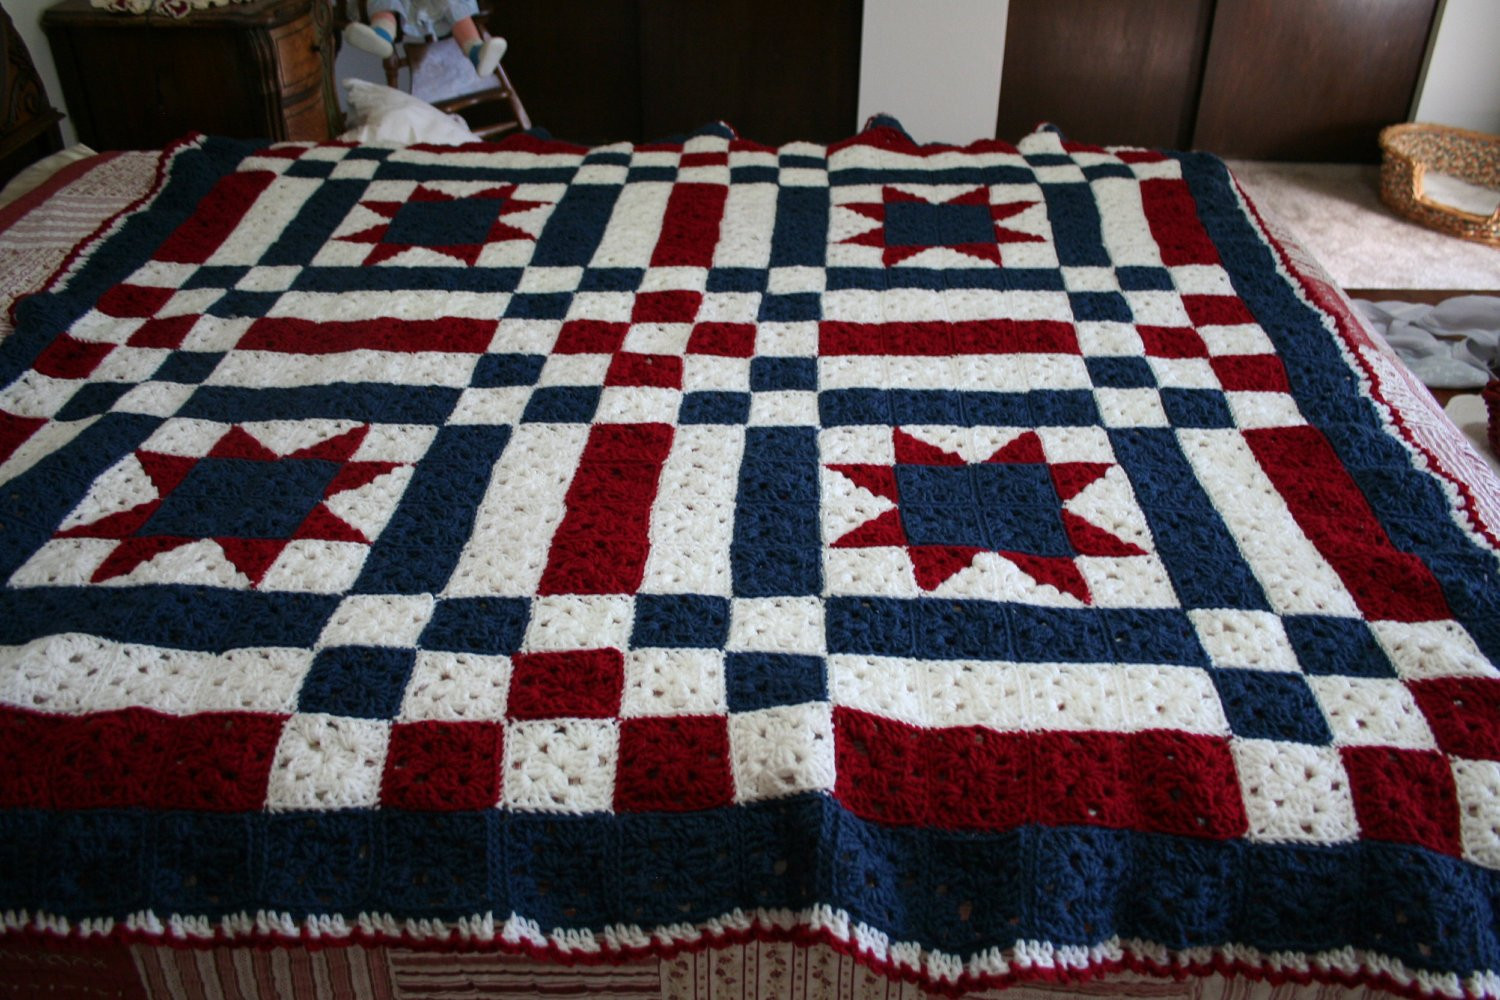 Crochet Quilts Inspirational Patriotic Ooak Crocheted Patchwork Quilt by 3rdtreeontheright Of Unique 45 Pics Crochet Quilts